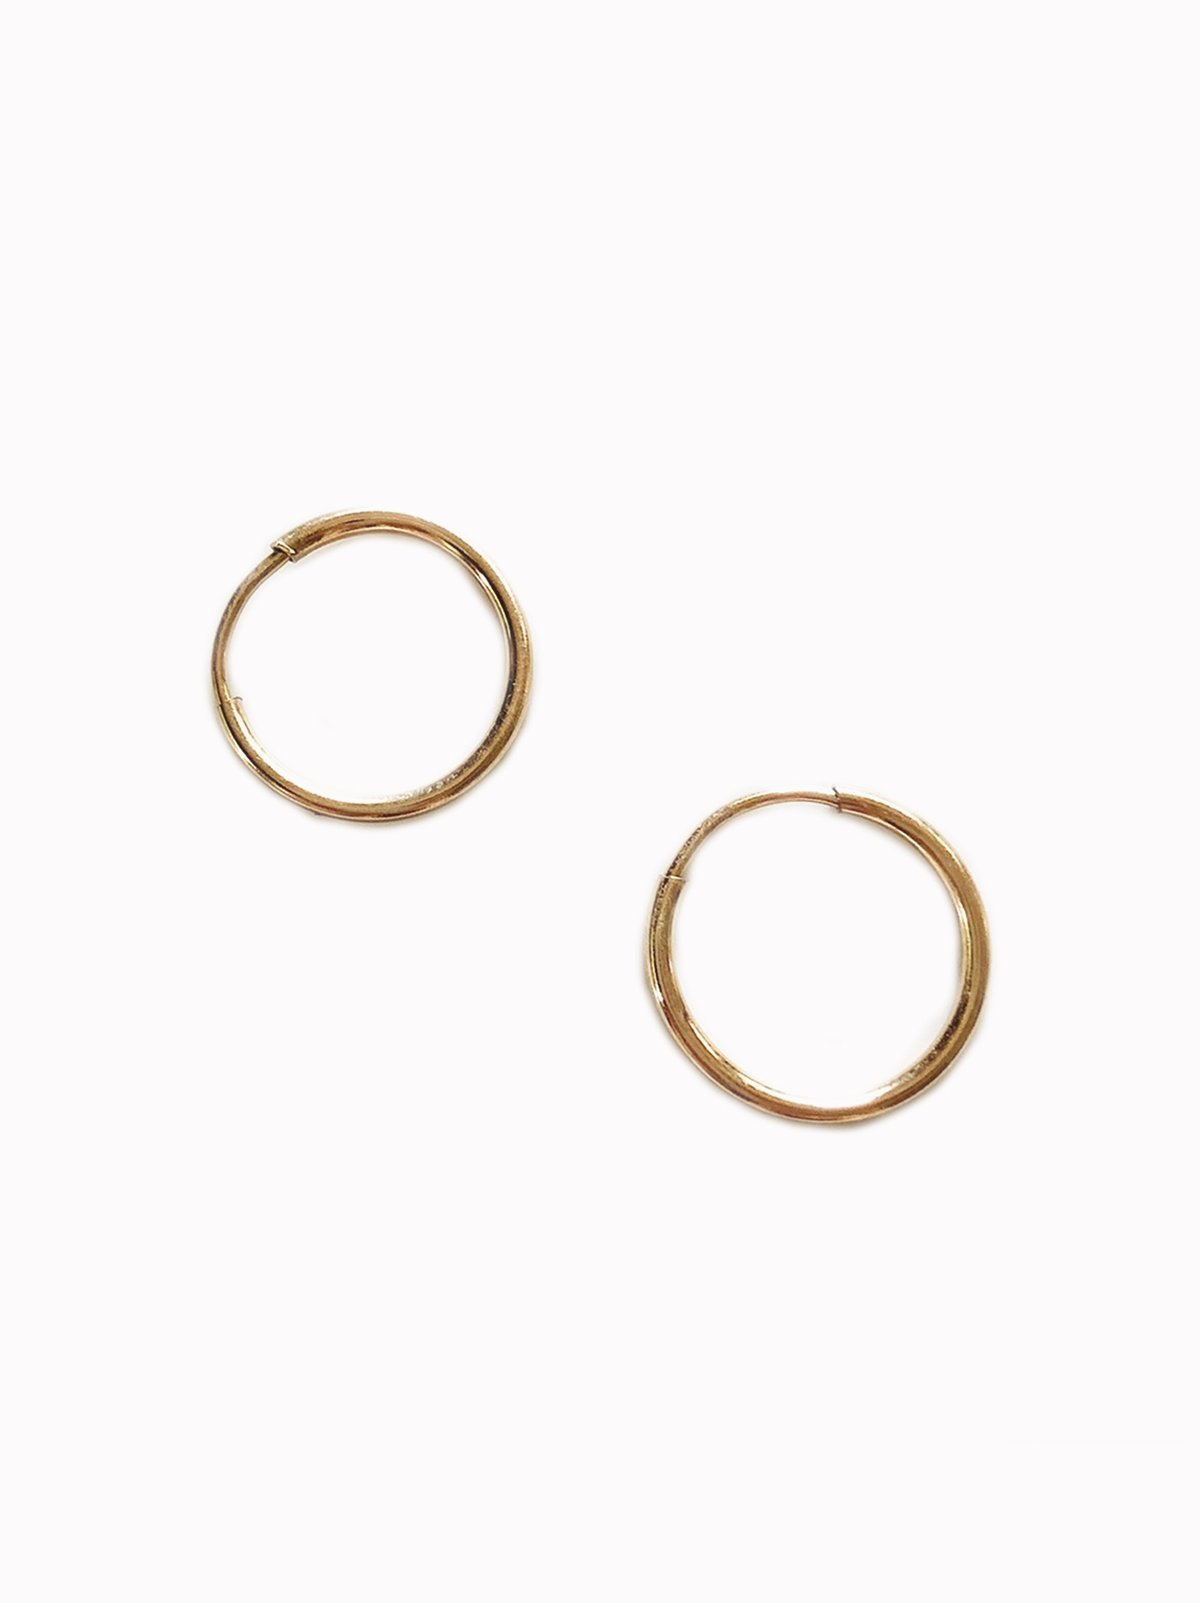 Tiny Endless Hoop Earrings